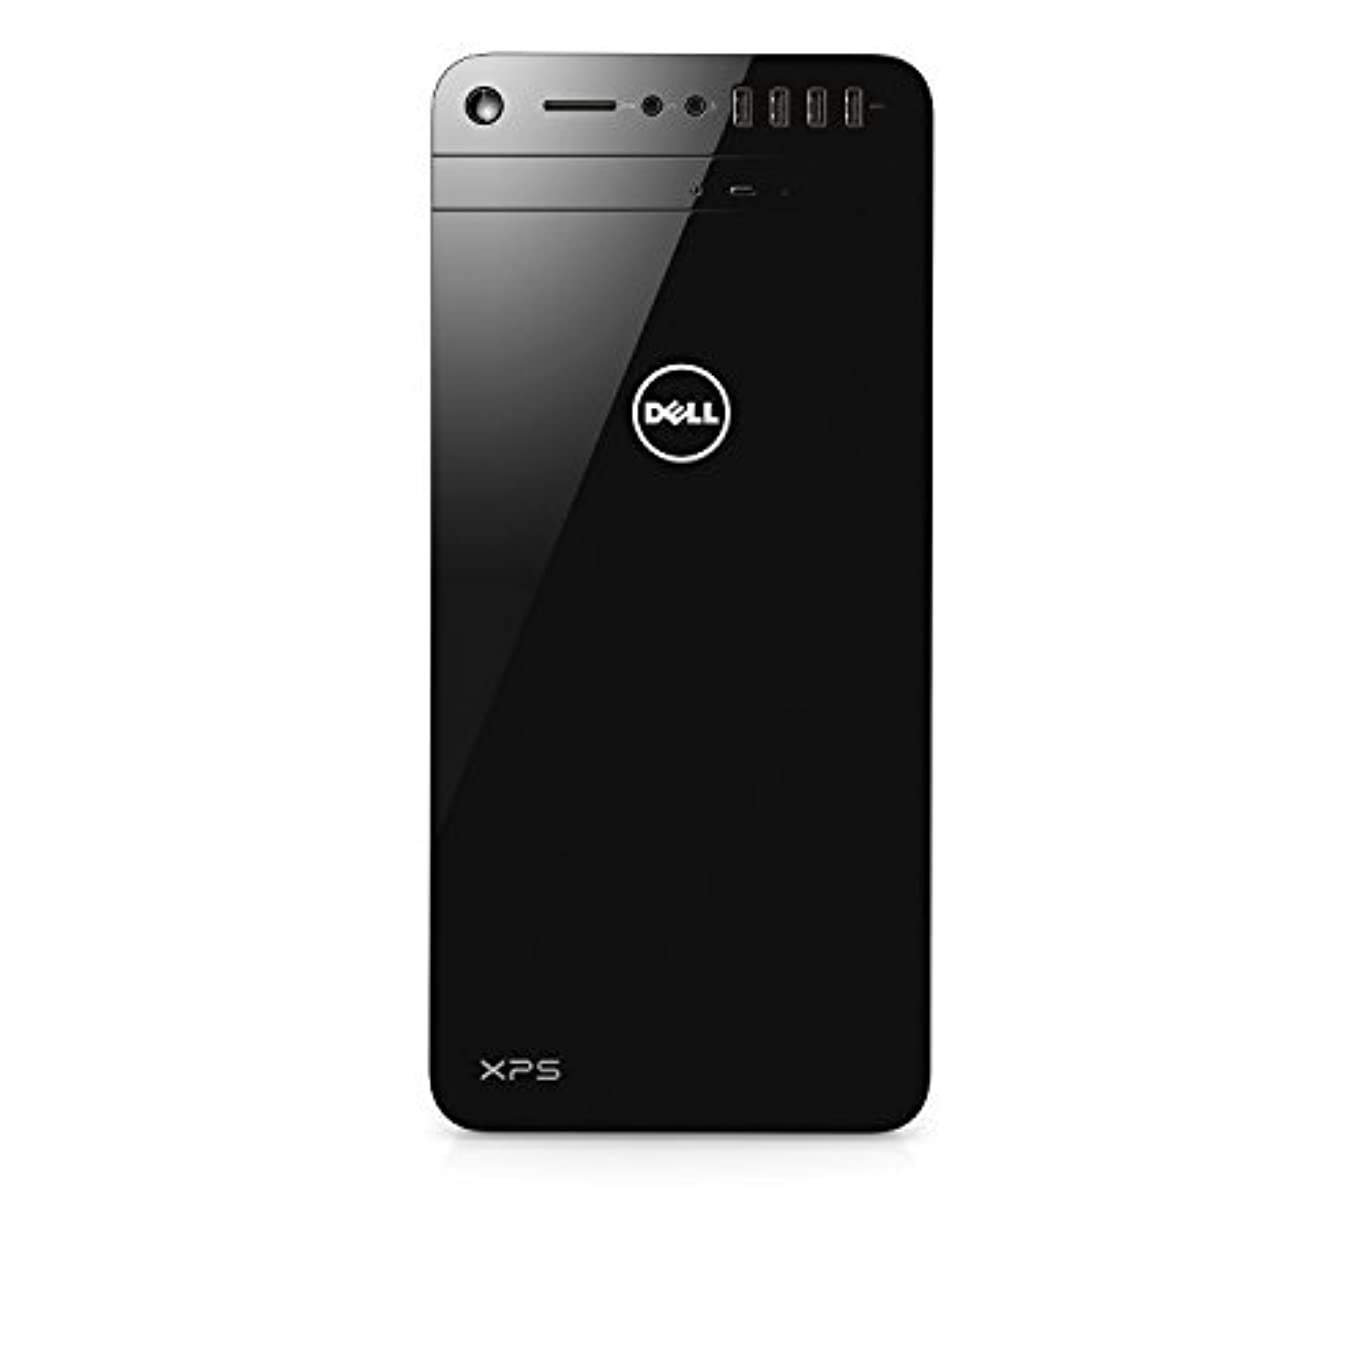 光沢のある幻滅パイプDell XPS 8910 Desktop | Intel Core i7-6700 Processor | 16 GB DDR4 | 1 TB HDD | NVIDIA GeForce GT 730 | Windows 10 Home [並行輸入品]